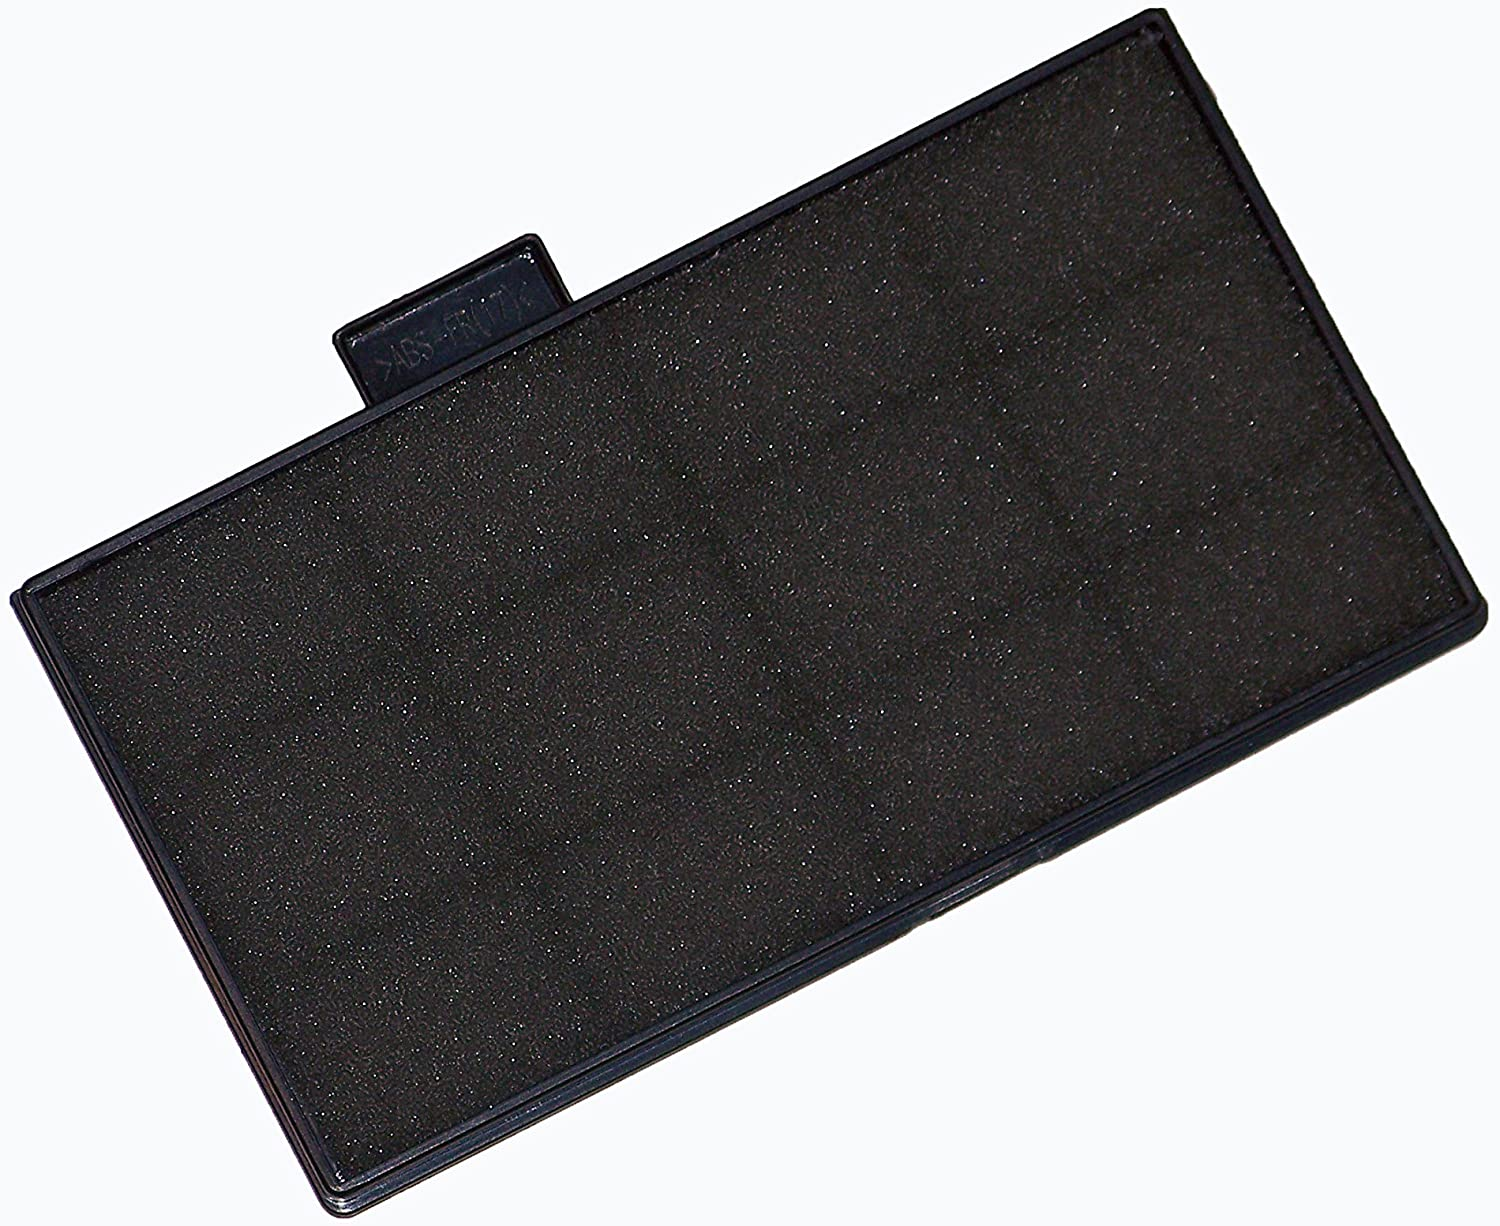 OEM Epson Projector Air Filter for Epson EX7240 Pro, PowerLite 1262W, 2040, 2045